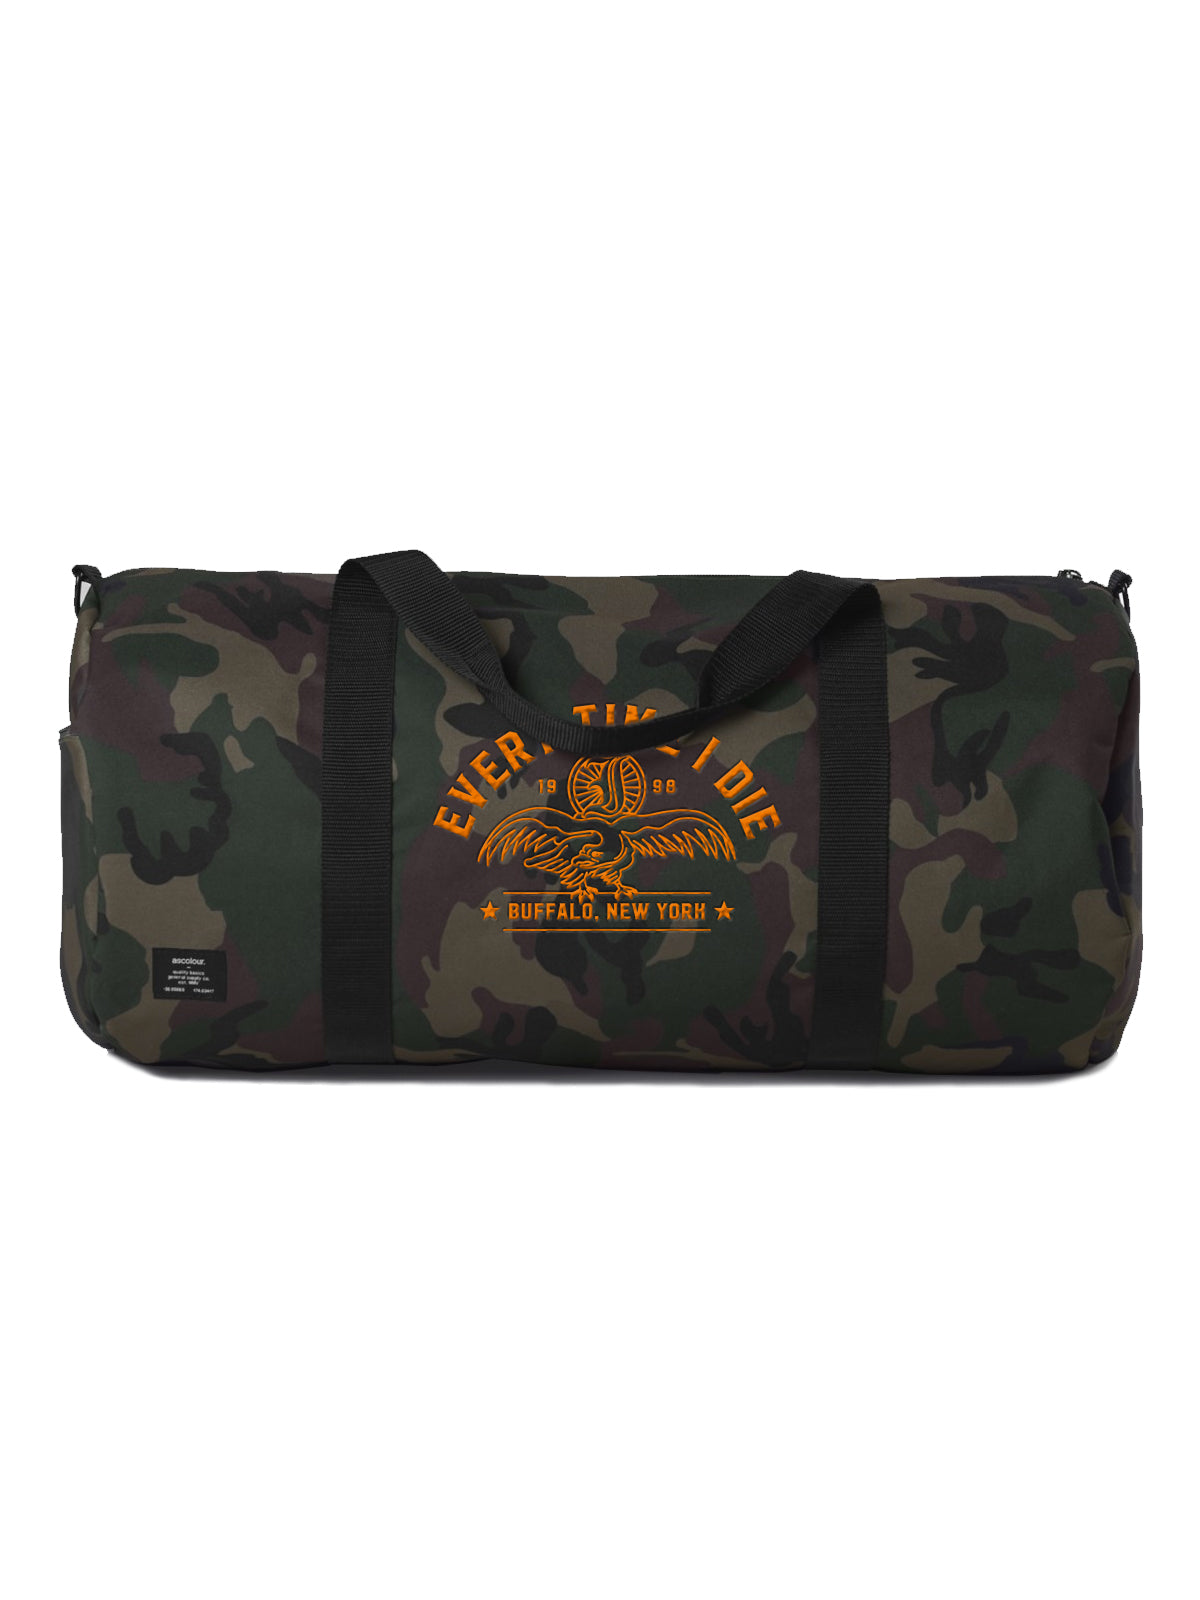 Every Time I Die - Camo Duffle Bag - Merch Limited 9ee552500f3